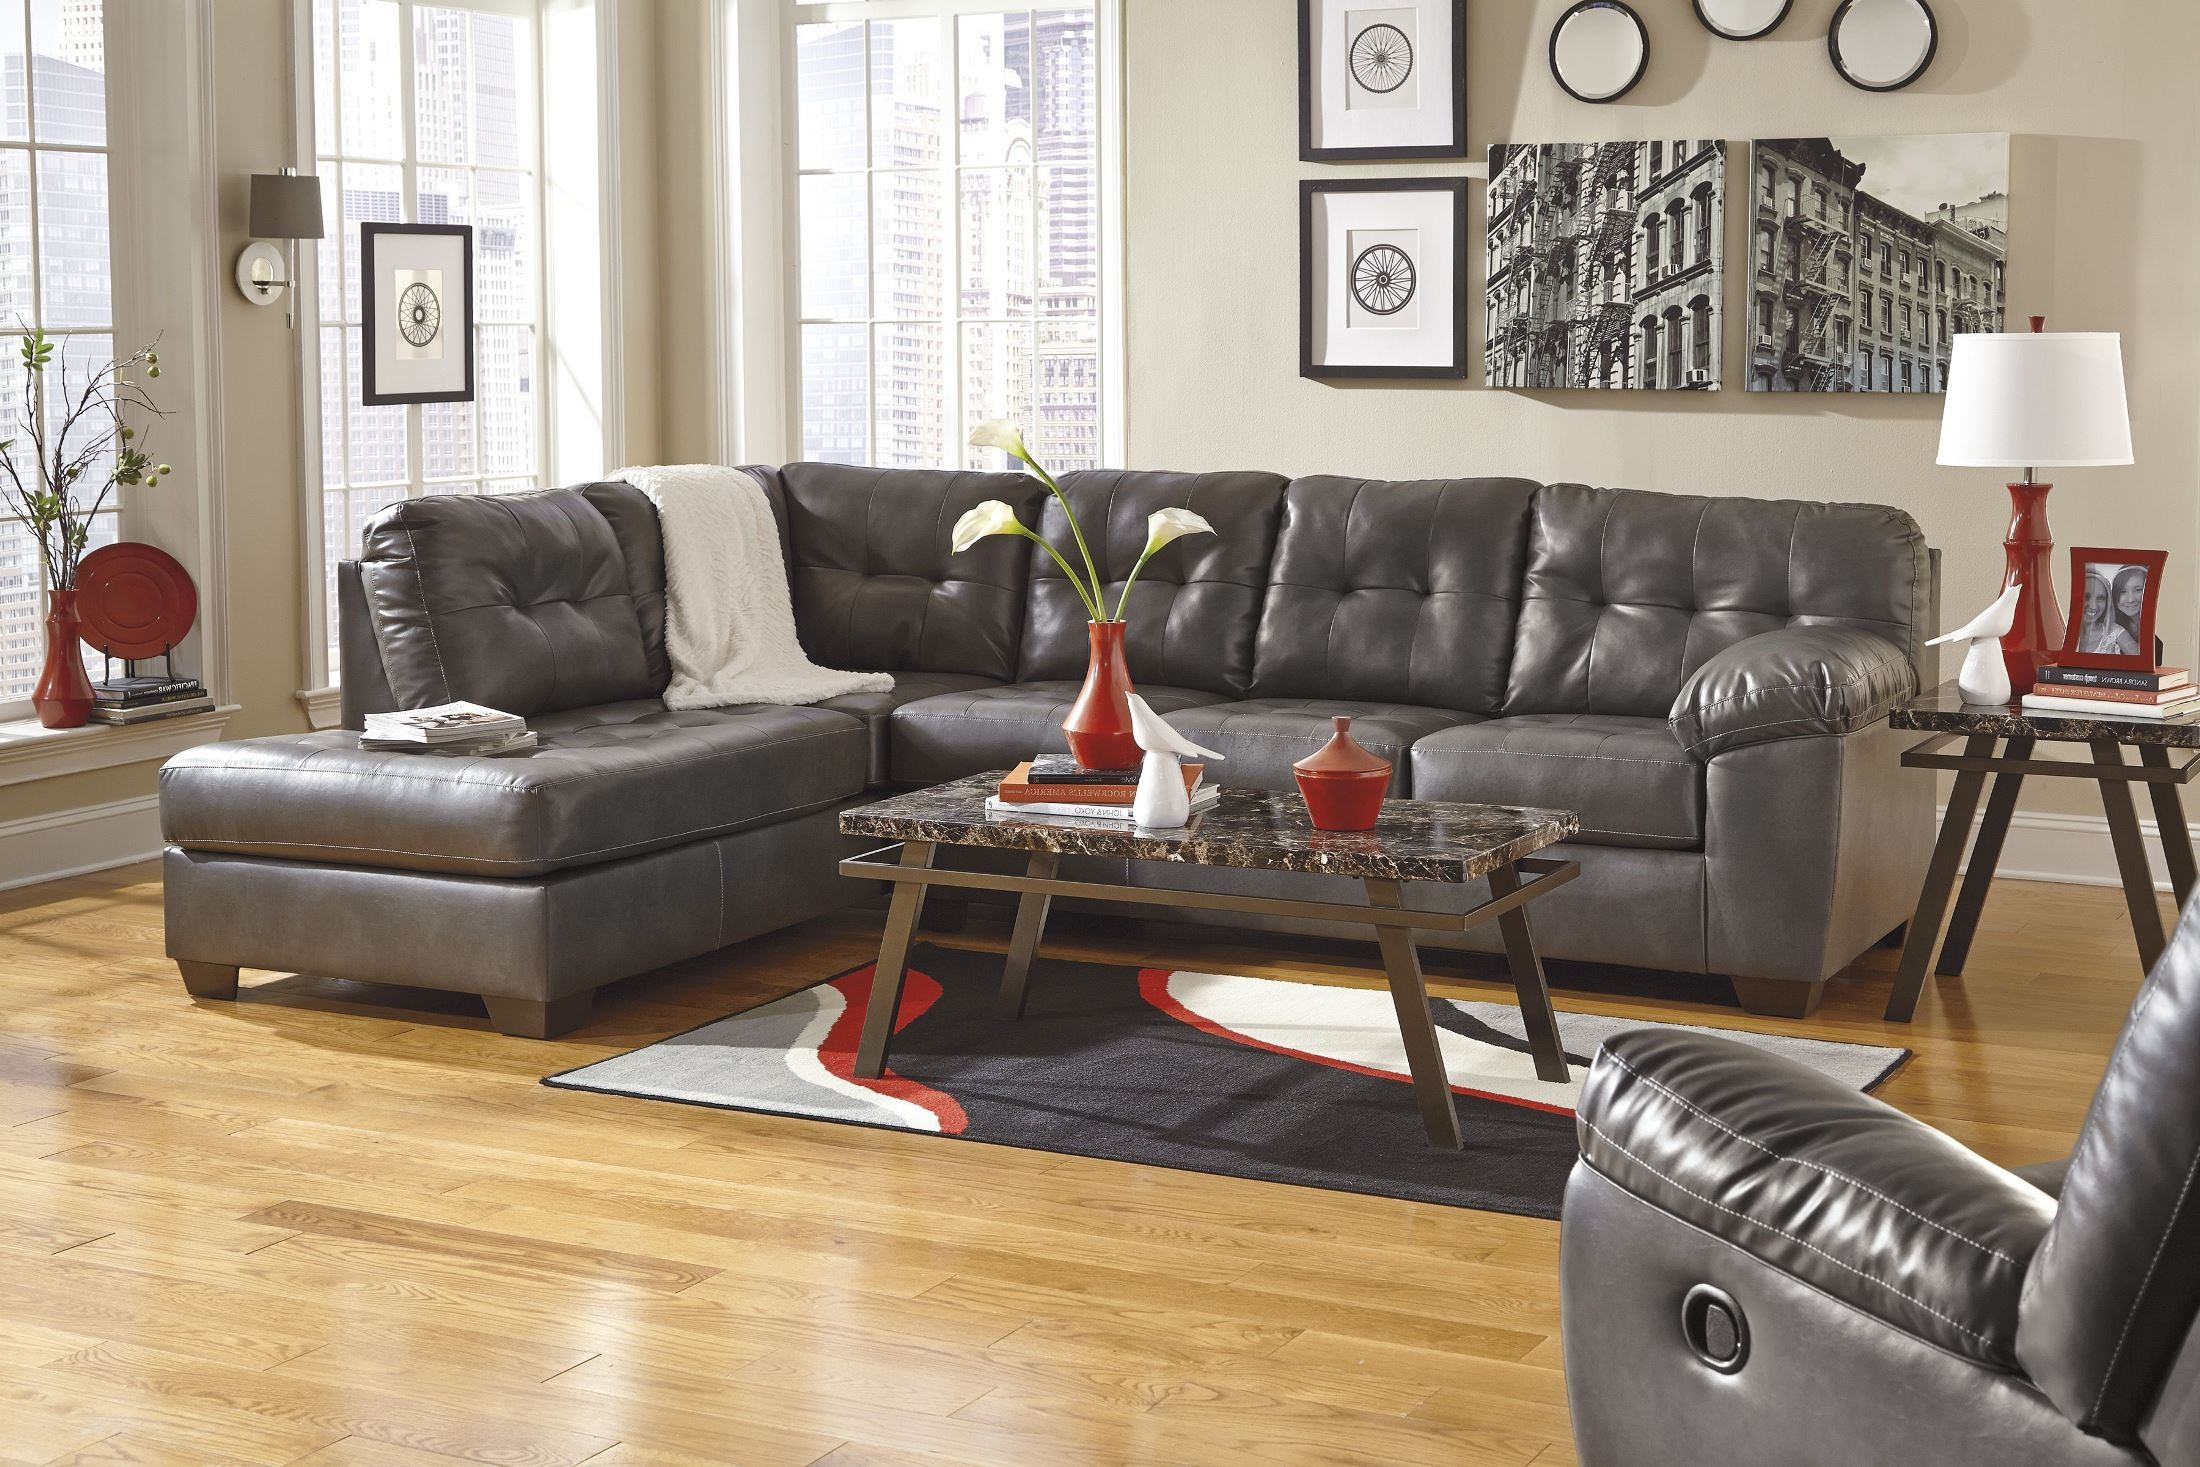 Alliston DuraBlend Gray LAF Sectional : laf sectional - Sectionals, Sofas & Couches